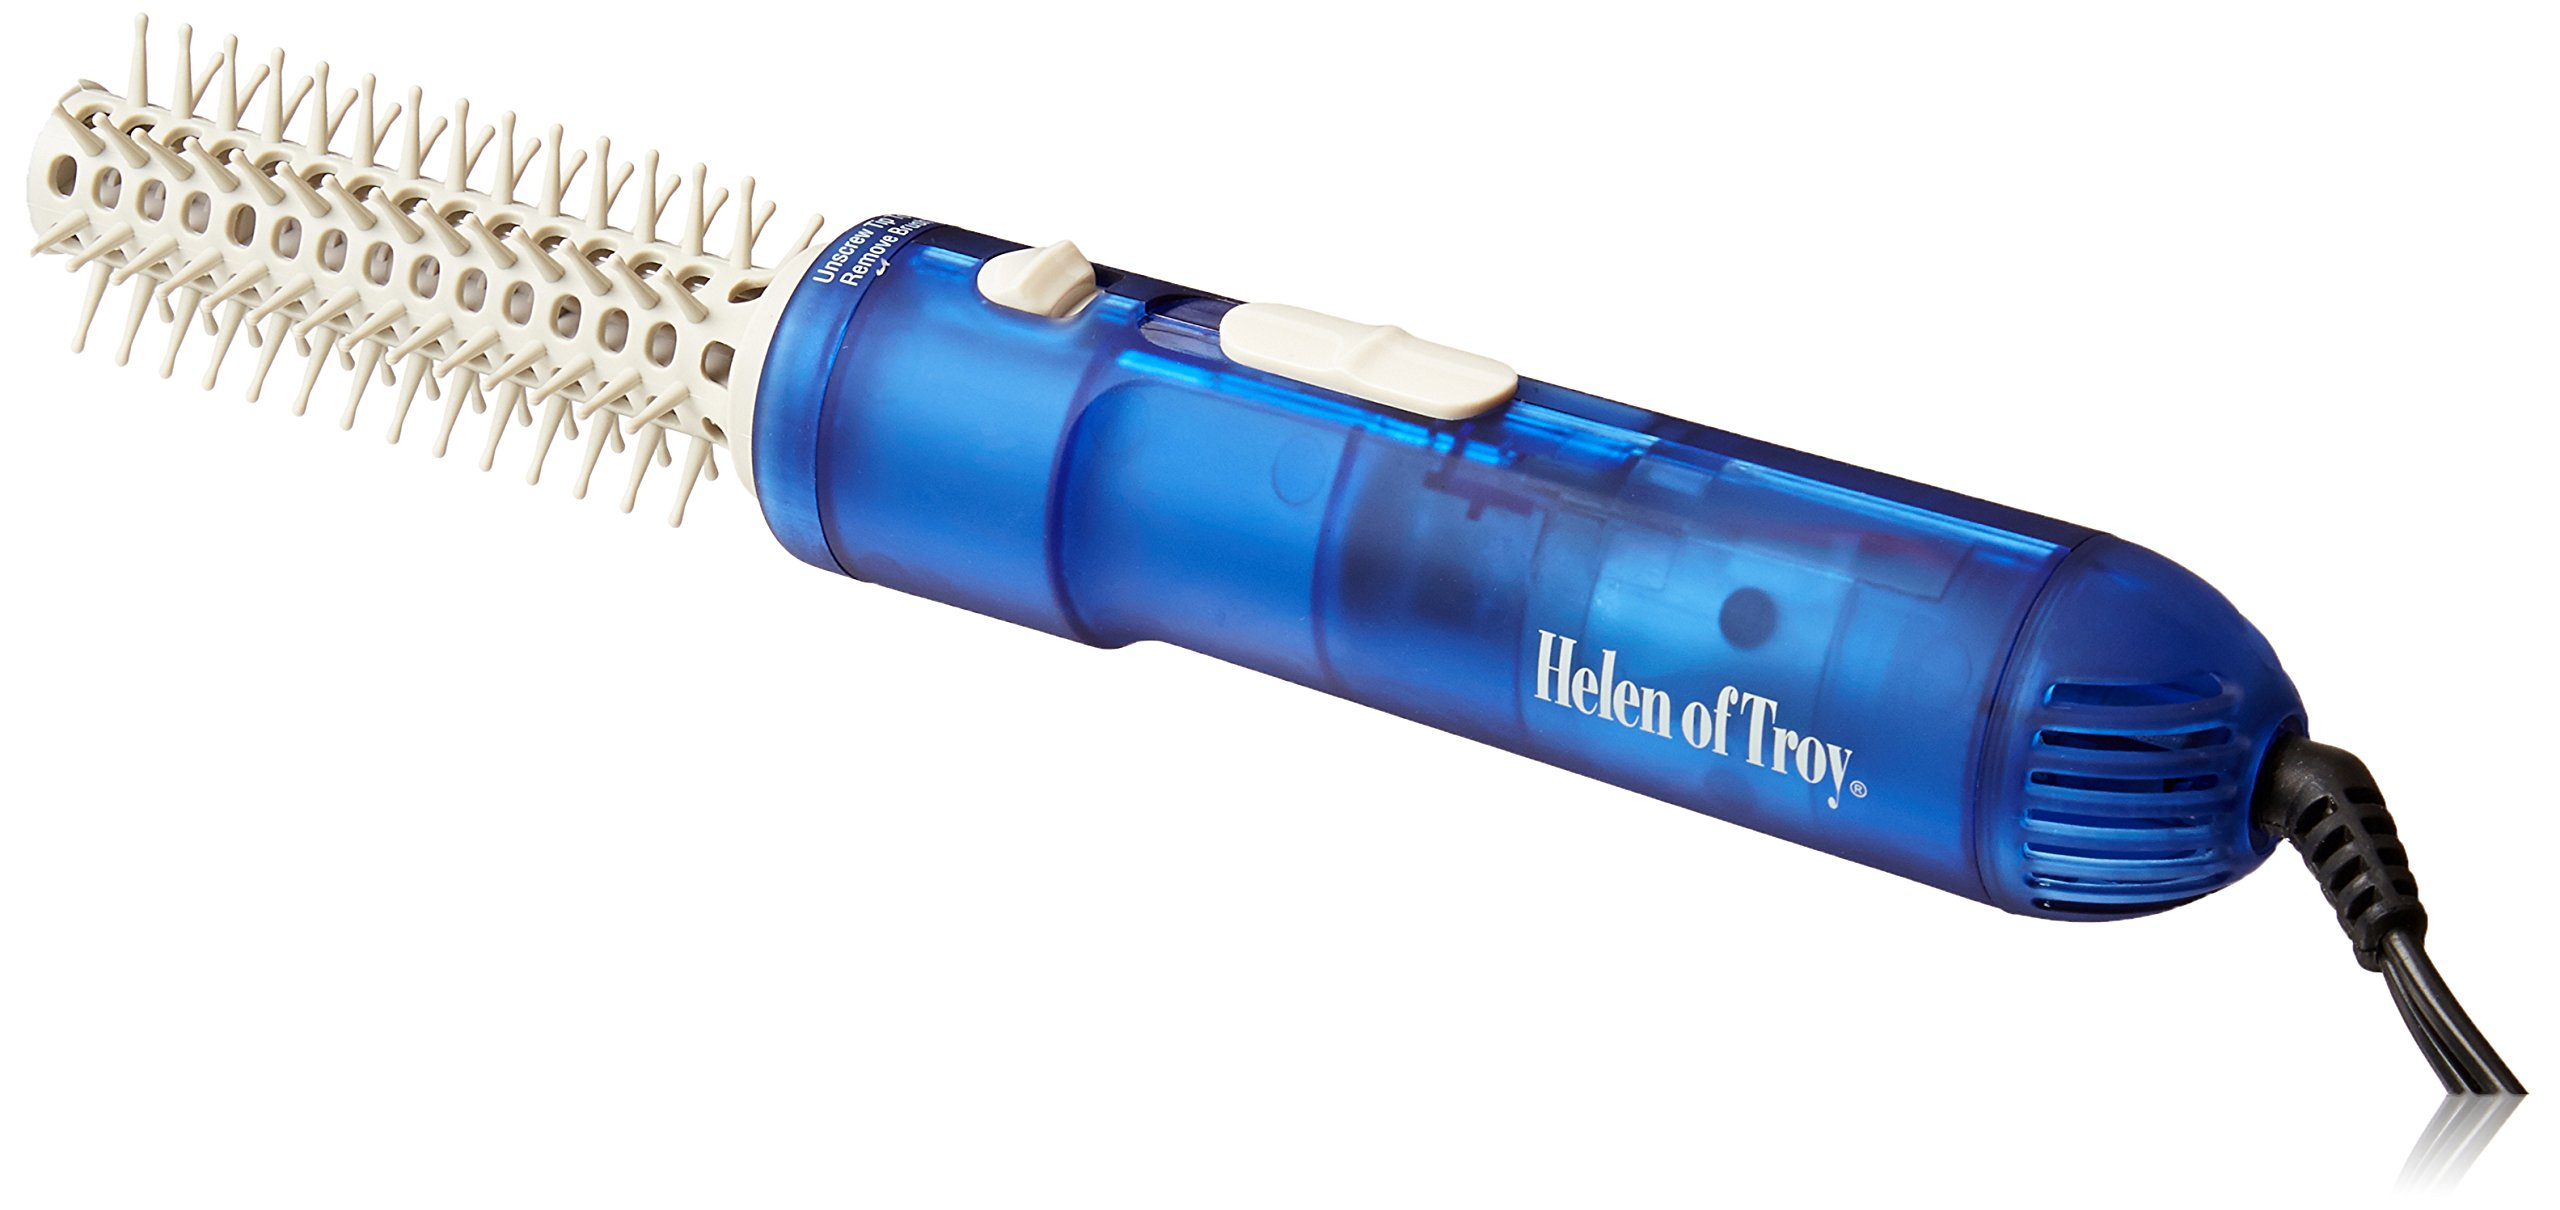 Helen of Troy 1579 Tangle Free Hot Air Brush, White, 3/4 Inch Barrel